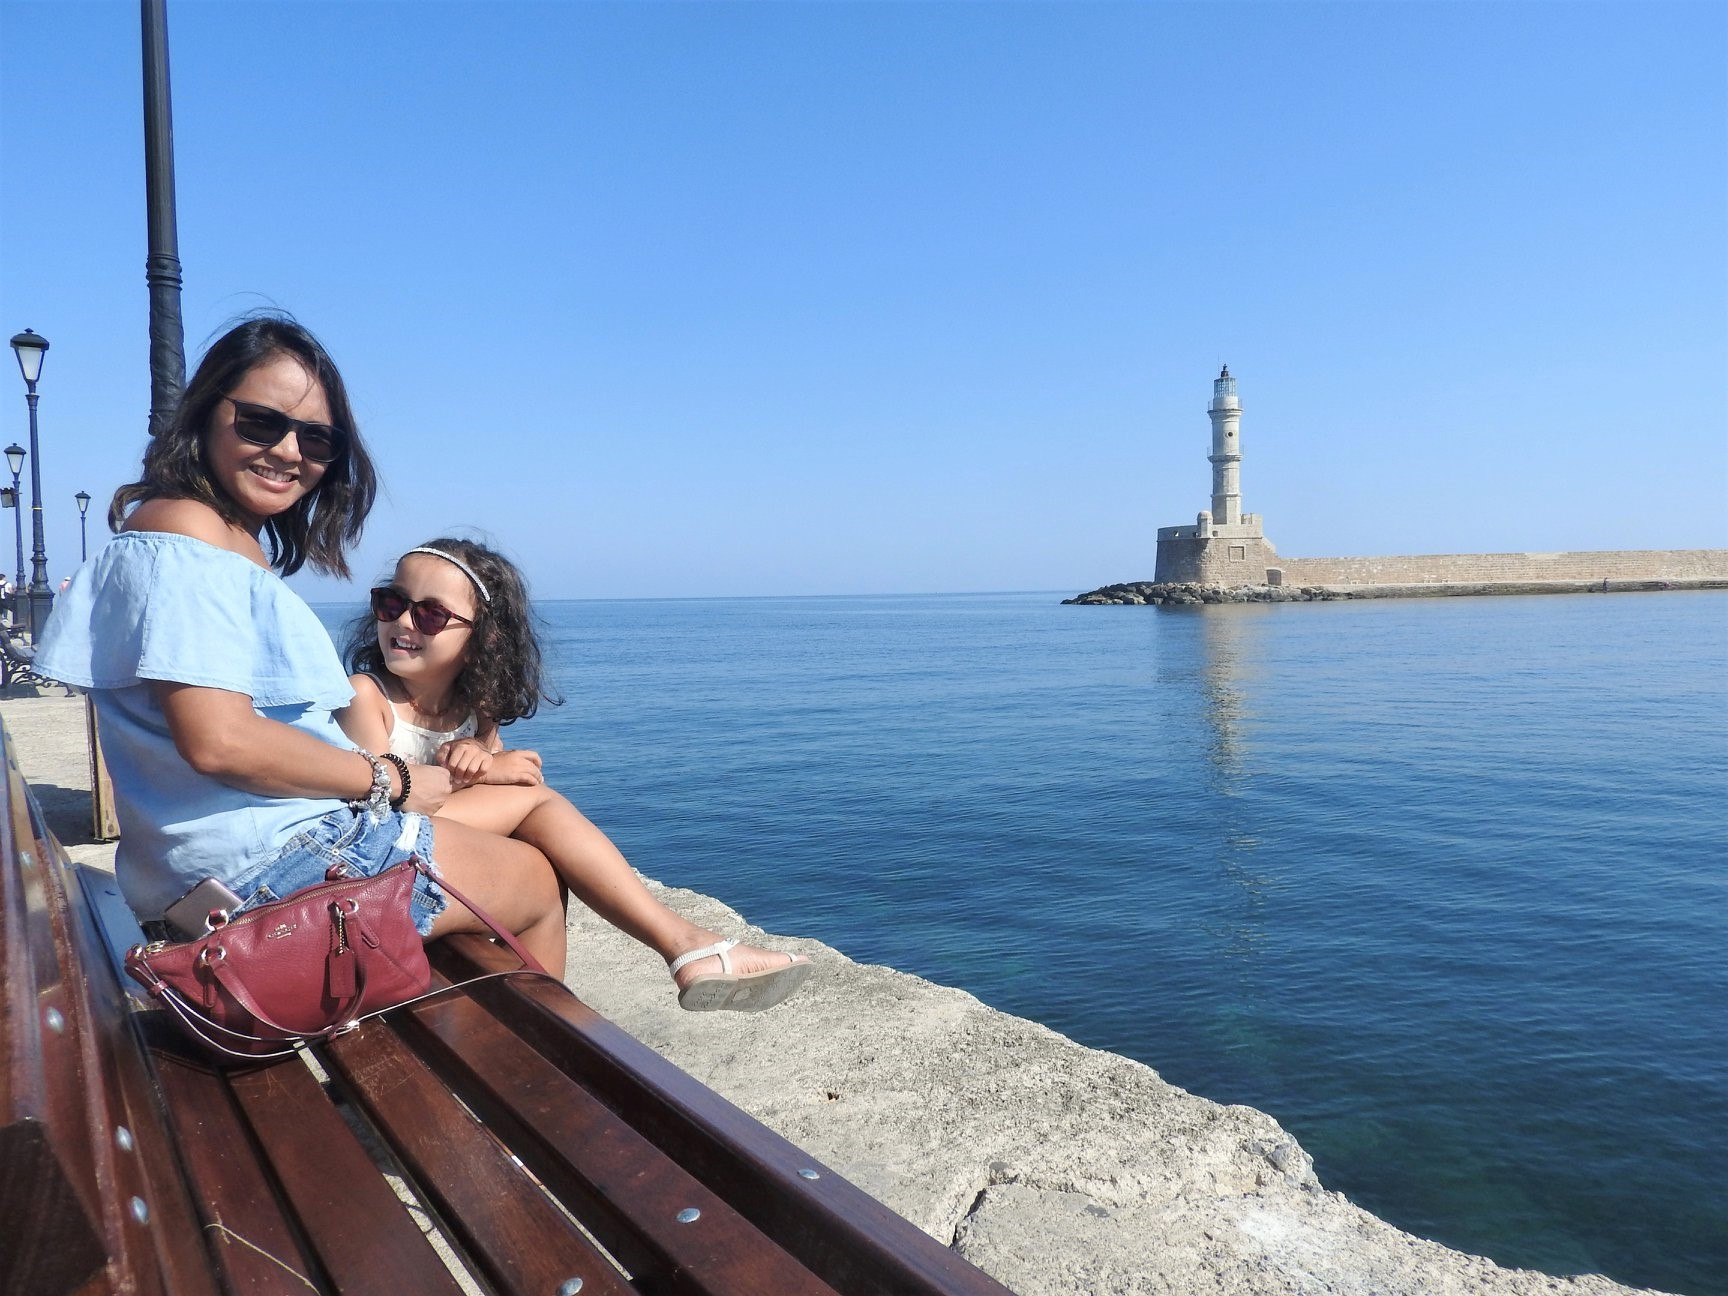 Lara and Mom at the old Venetian Harbor of Chania